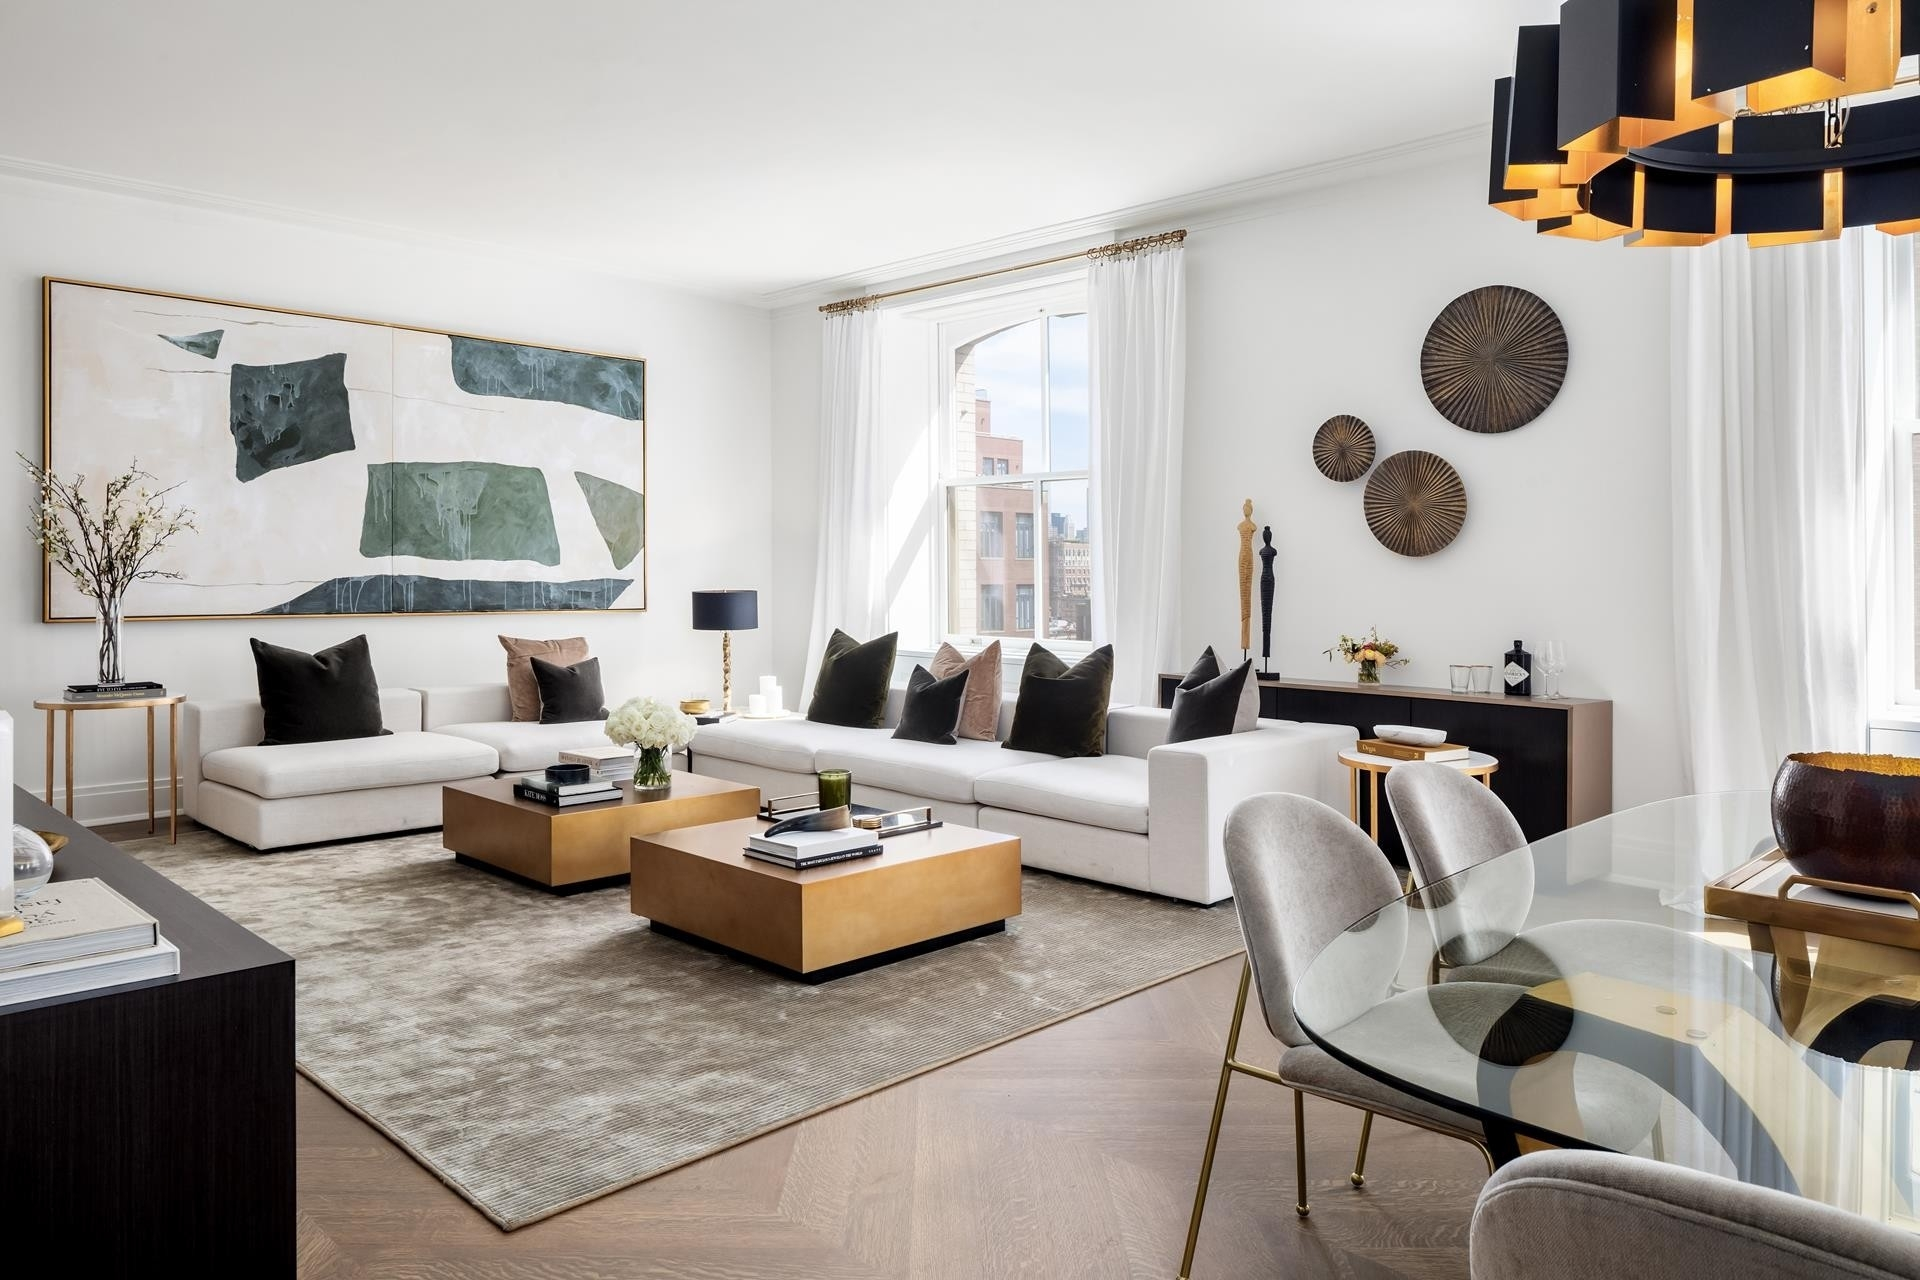 2. Condominiums for Sale at The Belnord, 225 West 86th St, 1103 Upper West Side, New York, NY 10024